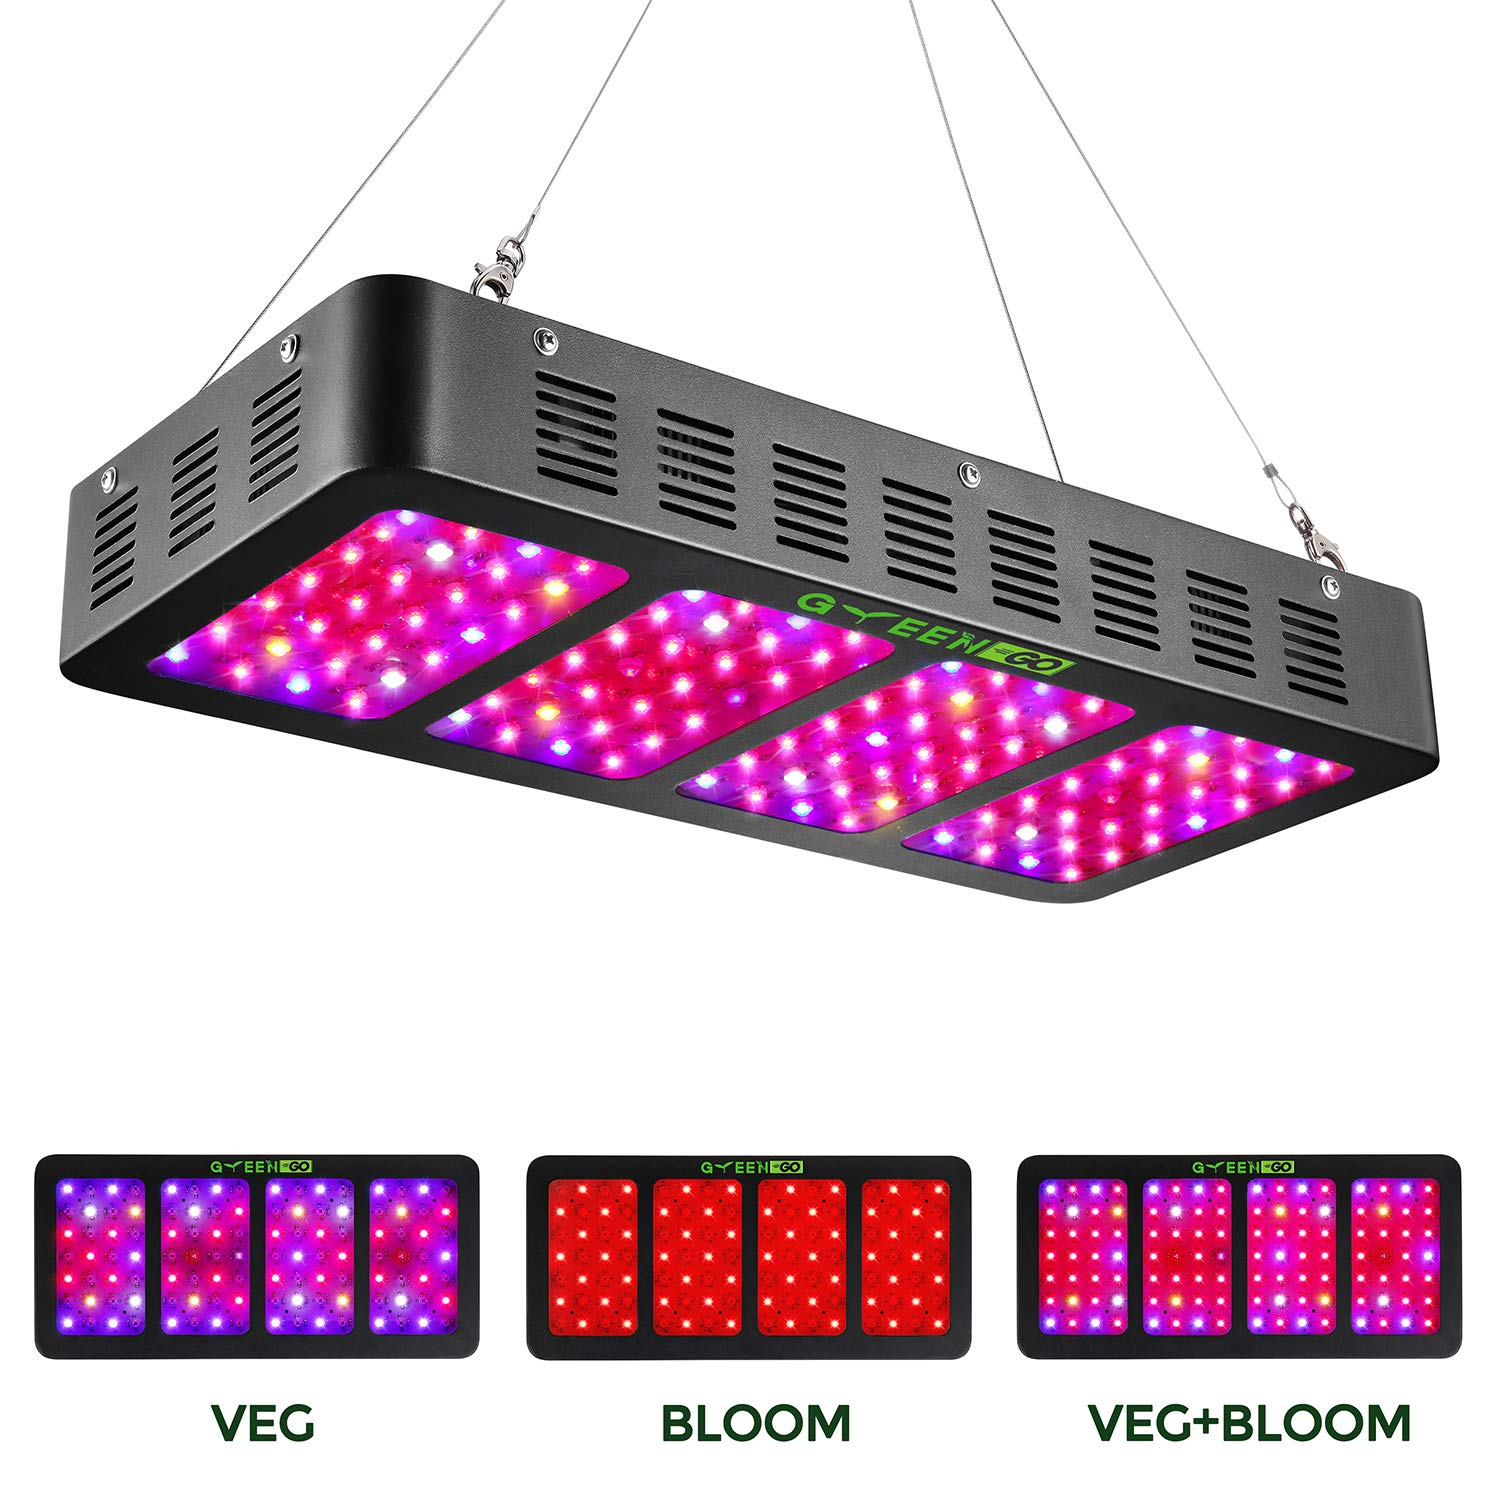 Indoor Full Spectrum Chips Plant amp;bloom Light Veg With Switch Daisy Veg For Plants greengo 3 1200w Chain Led Lamp Grow And Flowerled kuwOZiXPTl